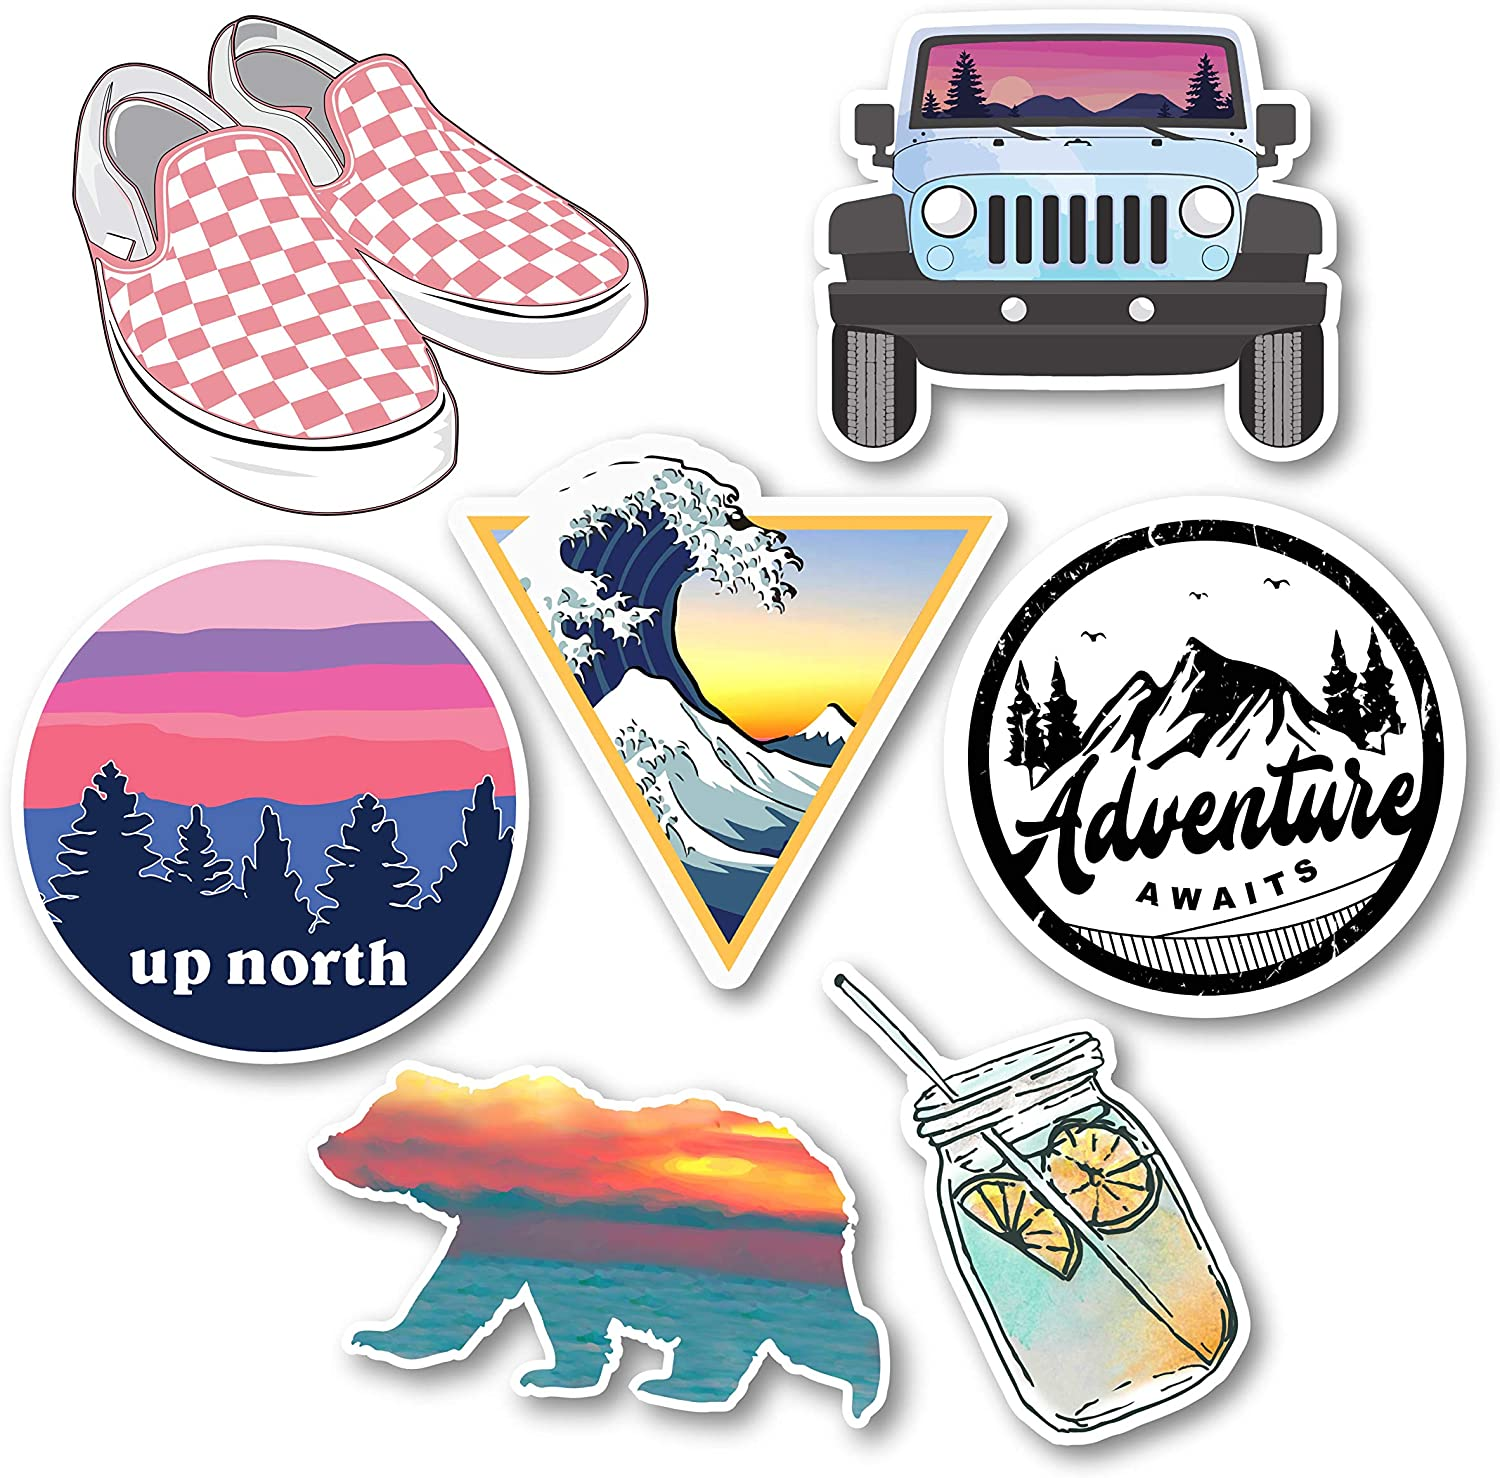 Cute Hydro Flask Stickers for Hydroflasks,Scrapbooking Stickers,Jeep Sticker, VSCO & Trendy Water Bottles Stickers for Laptops. Thick Vinyl Waterproof 2020 Collection.